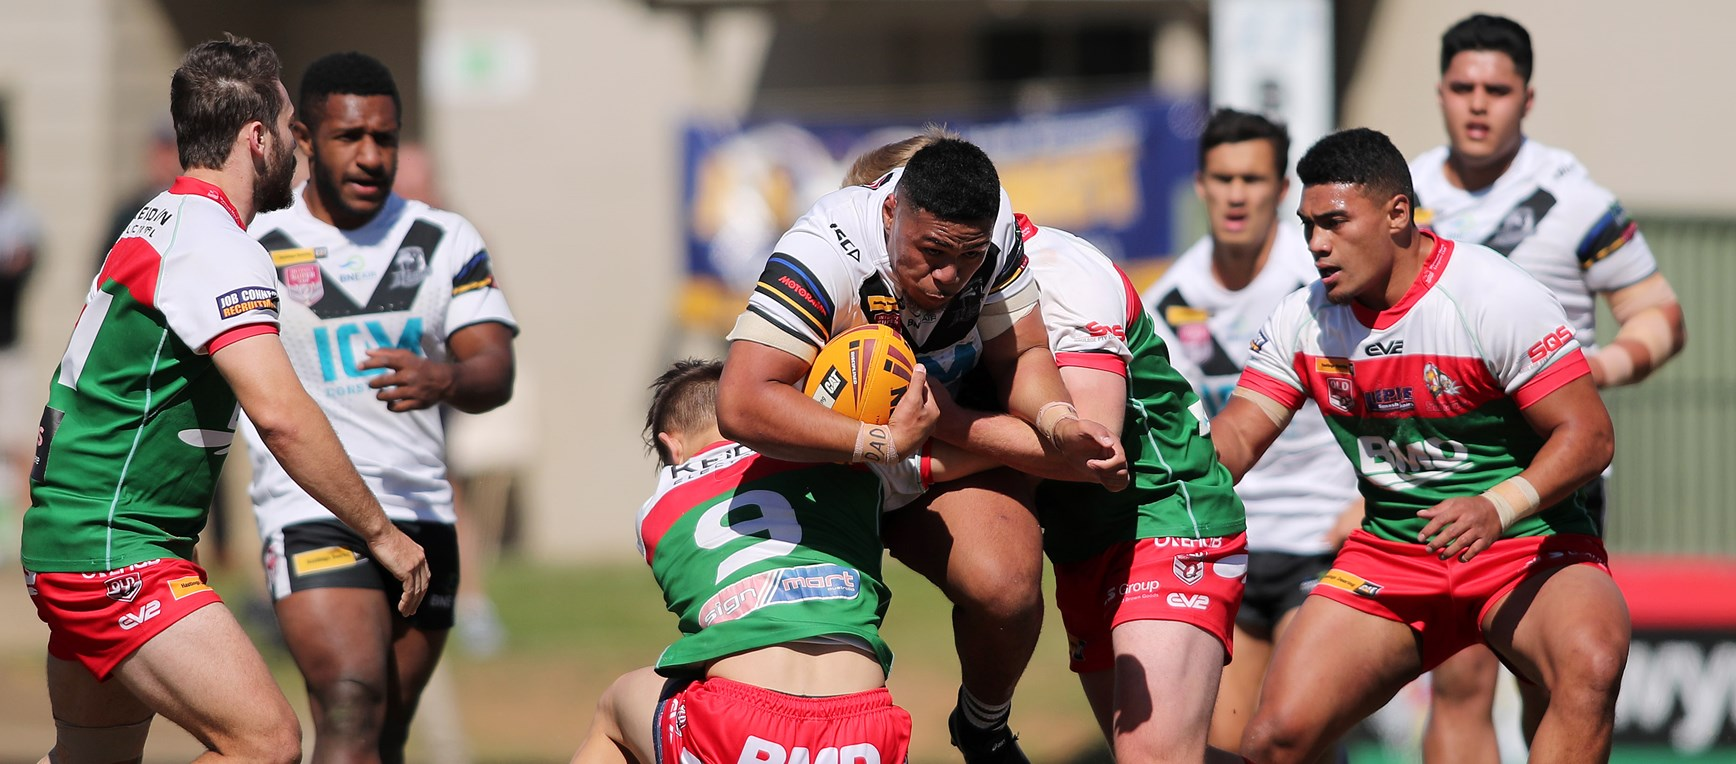 In pictures: Hastings Deering Colts Round 20